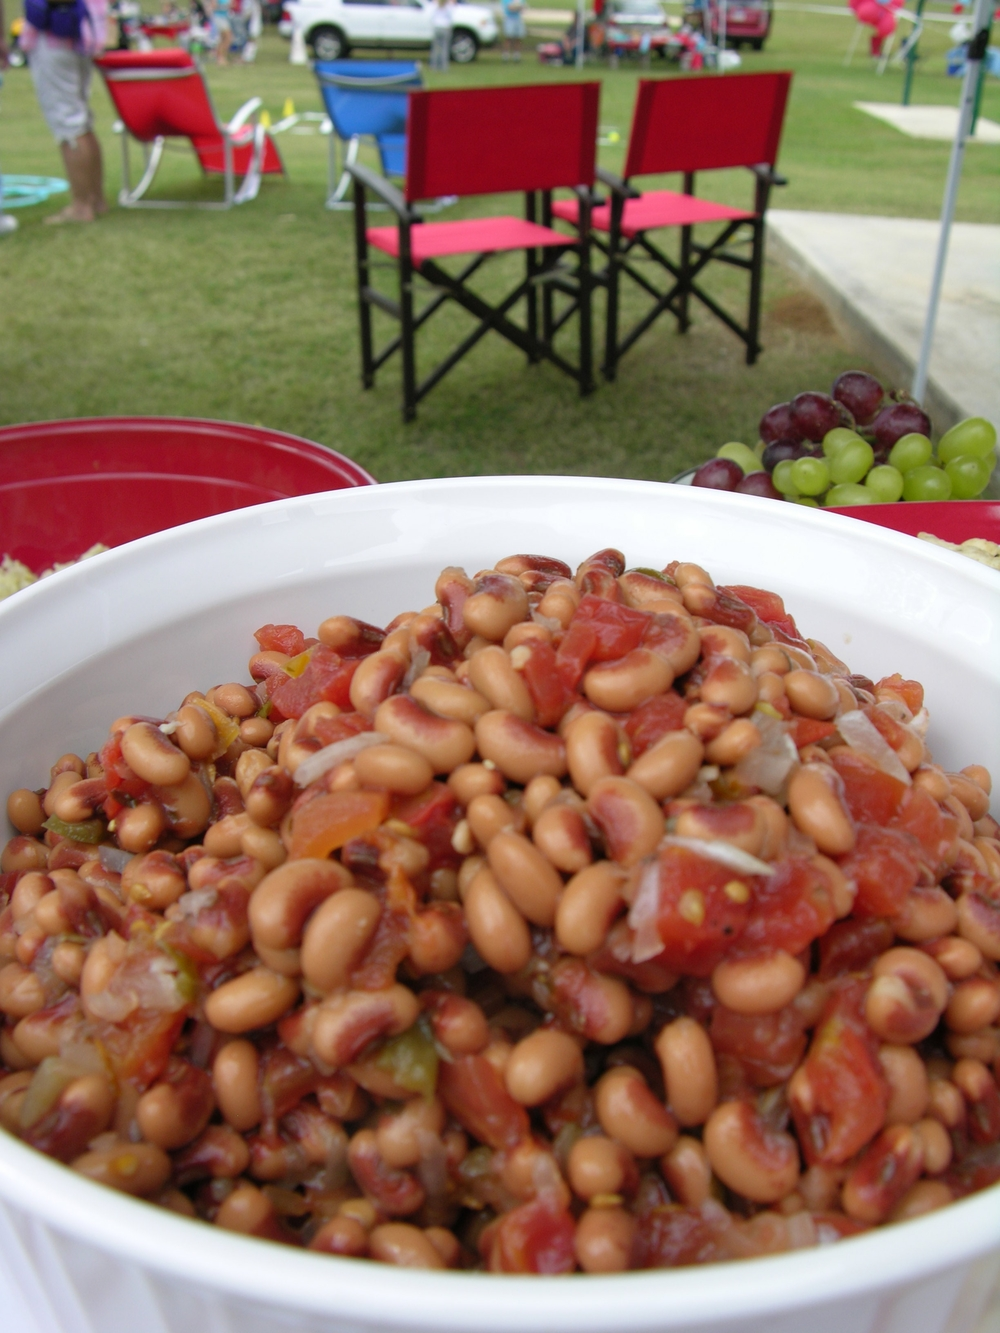 Black Eyed Pea Salad is a great side dish or party dip served with toasted pits chips or those yummy Scoops by Fritos. It holds well on a hot day and can be served chilled or room temperature.